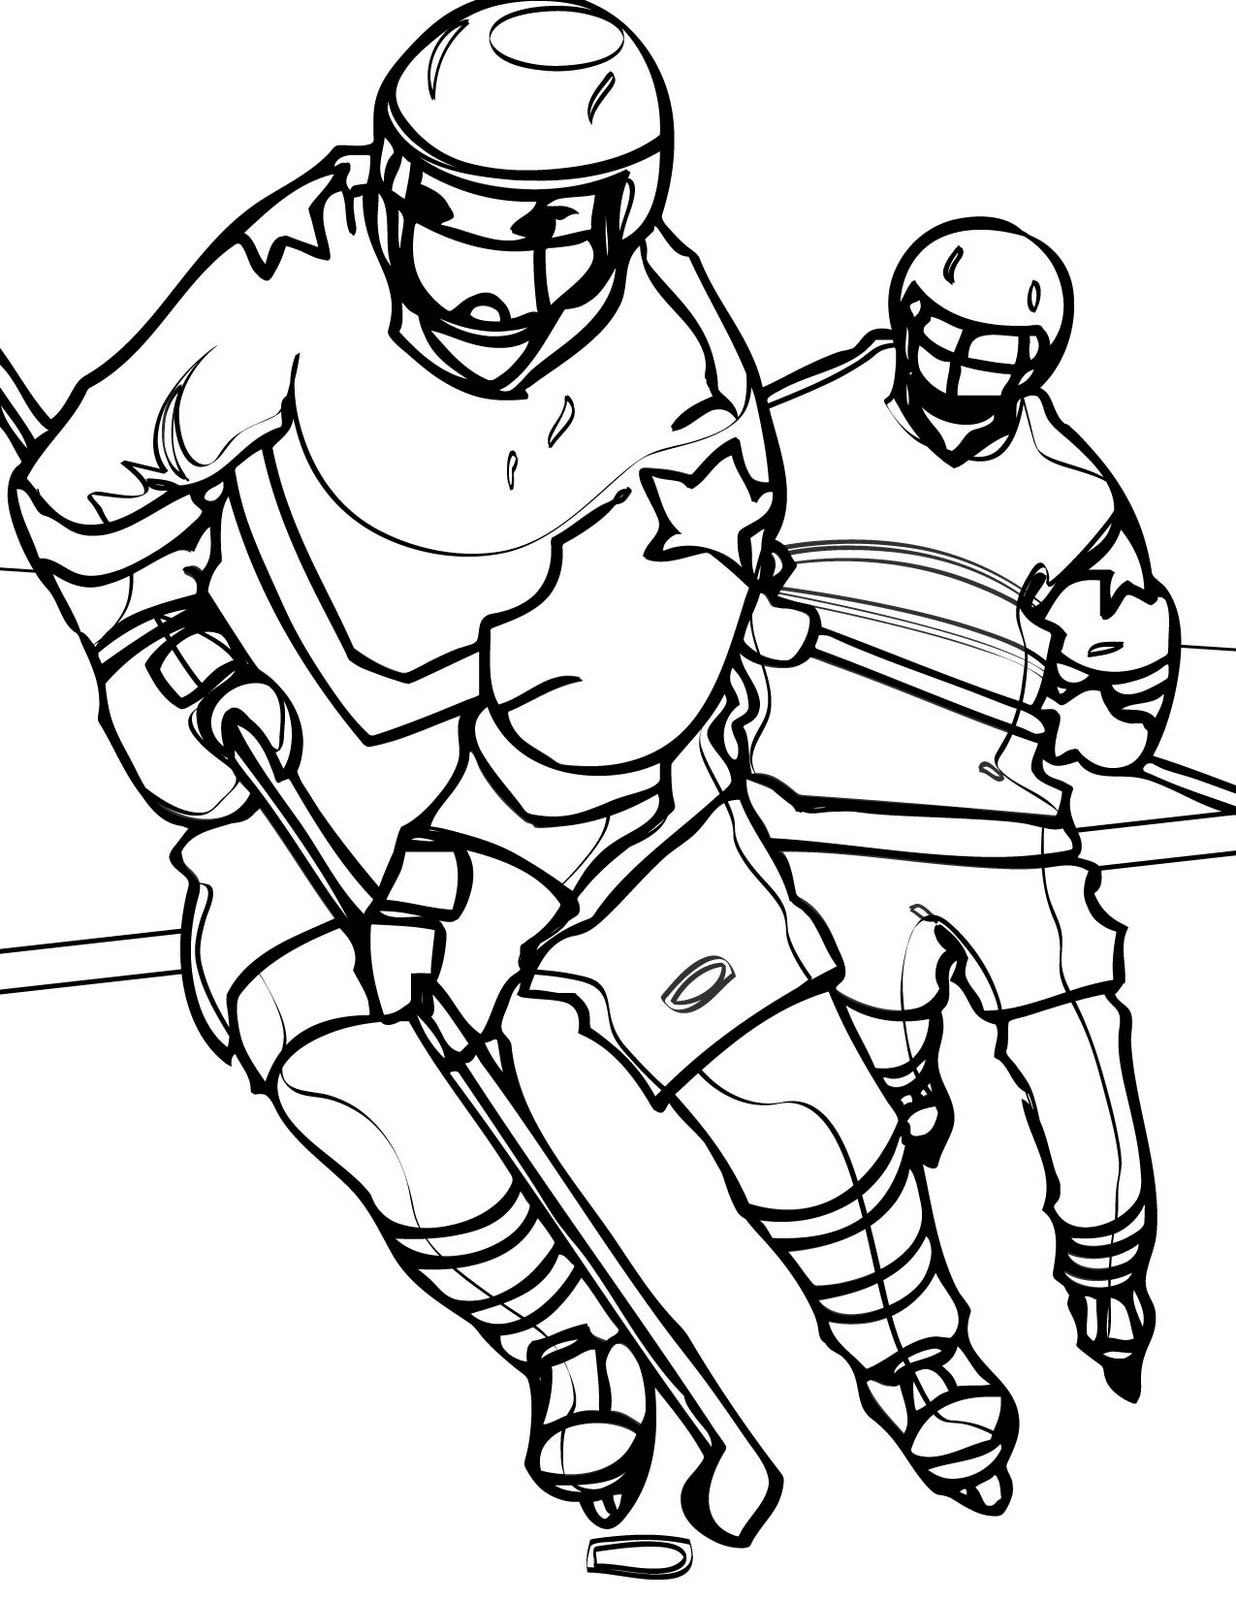 Hockey Coloring Pages Learn To Coloring Www Coloring Pages